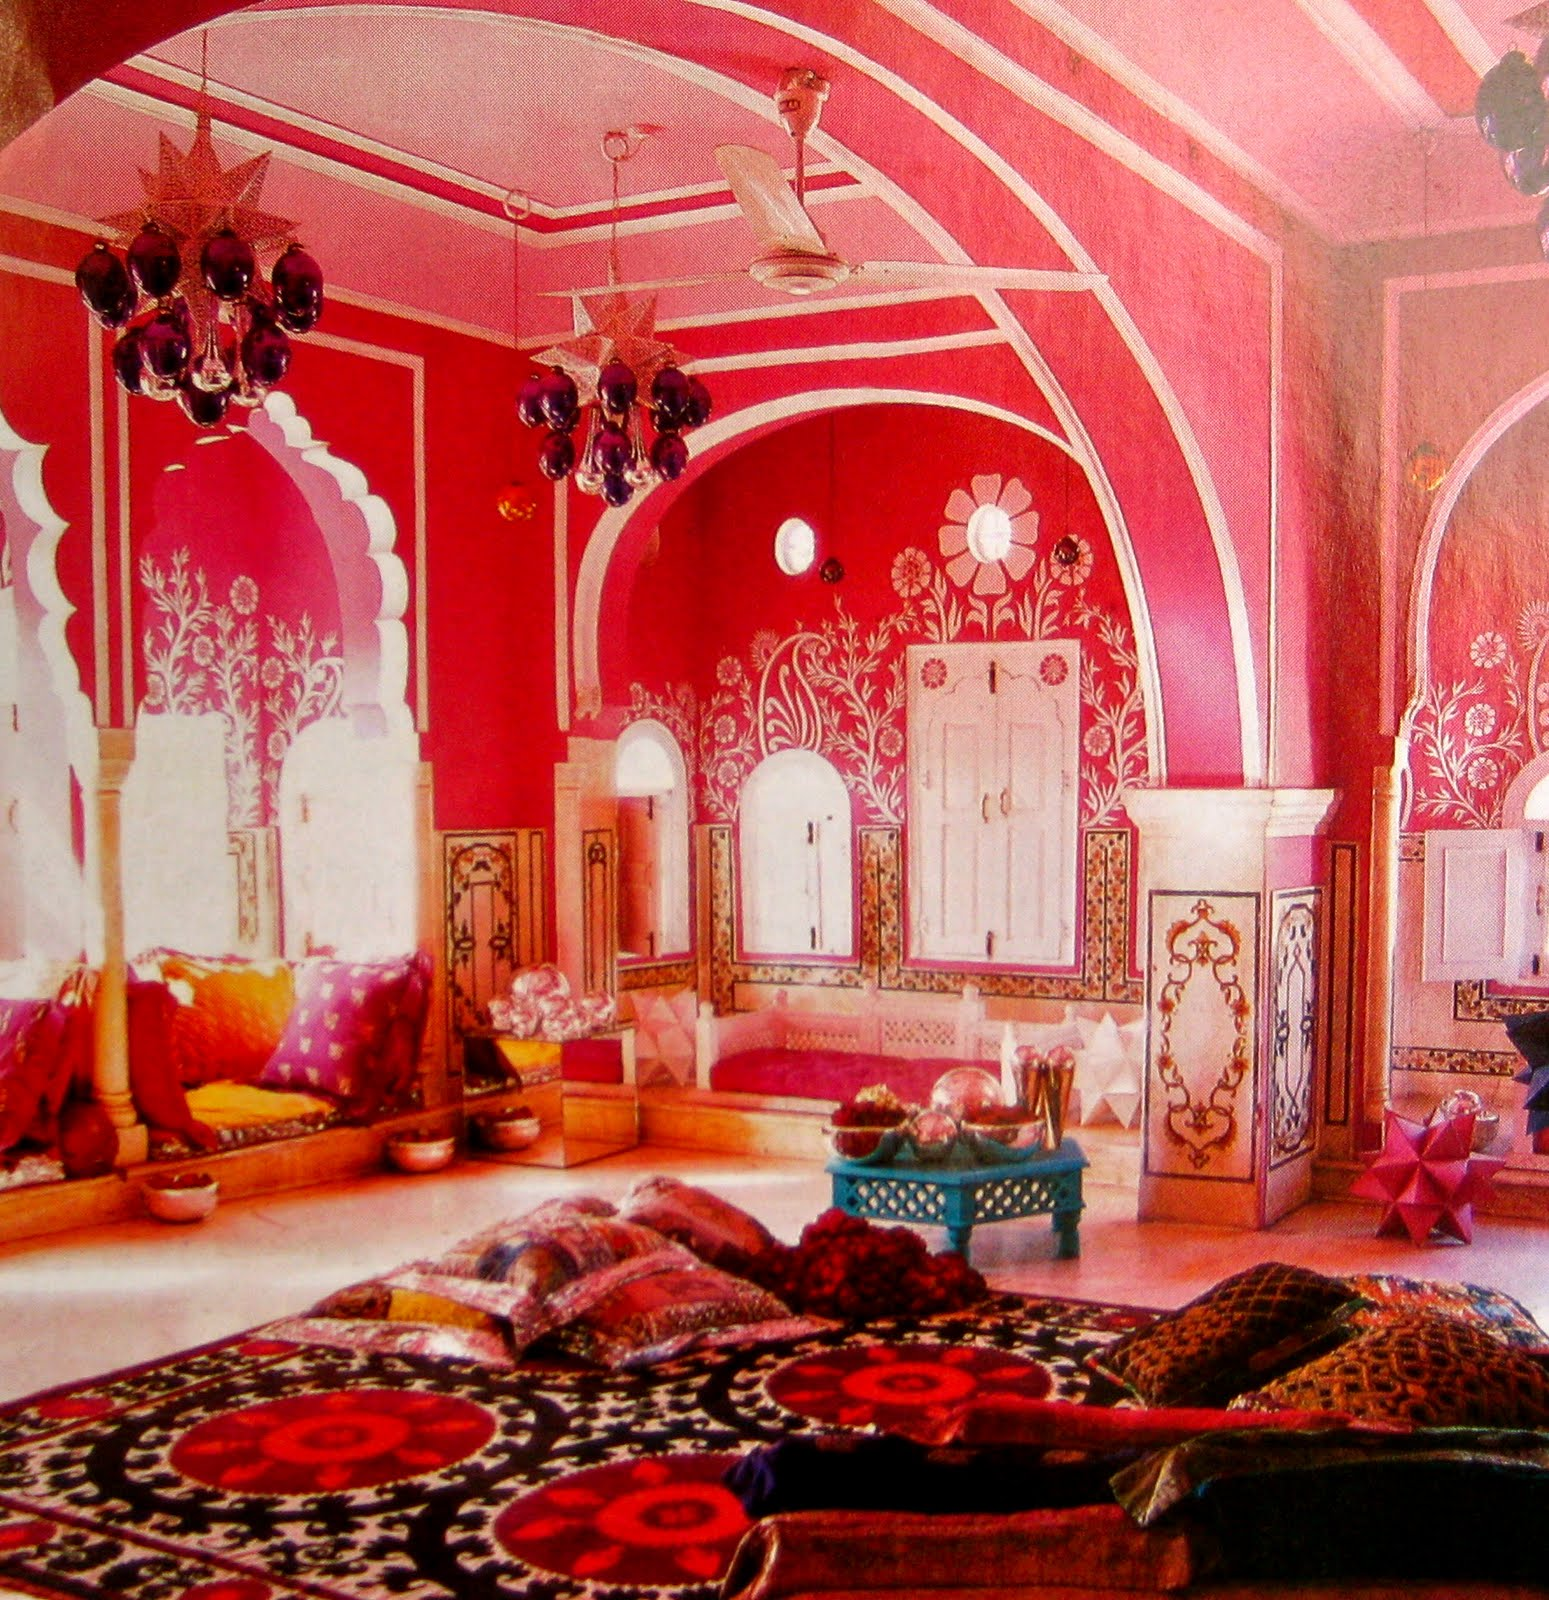 96 Best Images About Indian Decor Home On Pinterest India